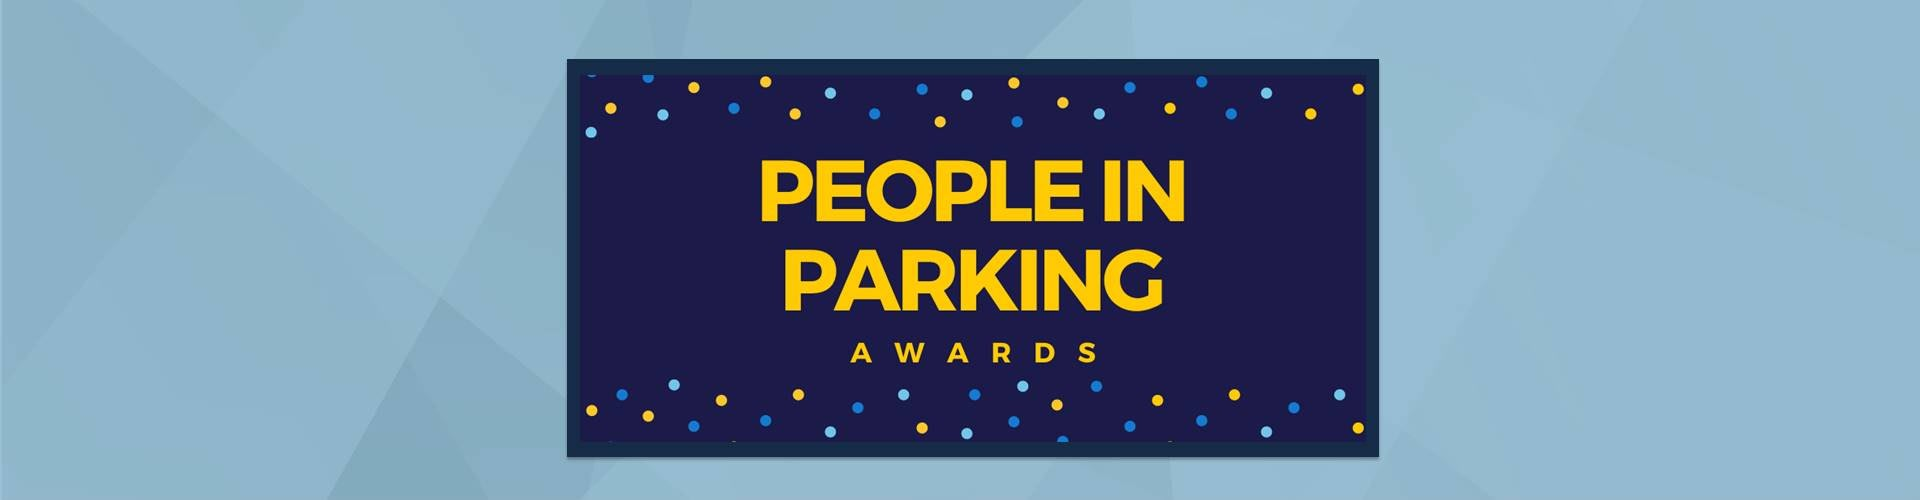 Avi and Hazel shortlisted for People in Parking awards